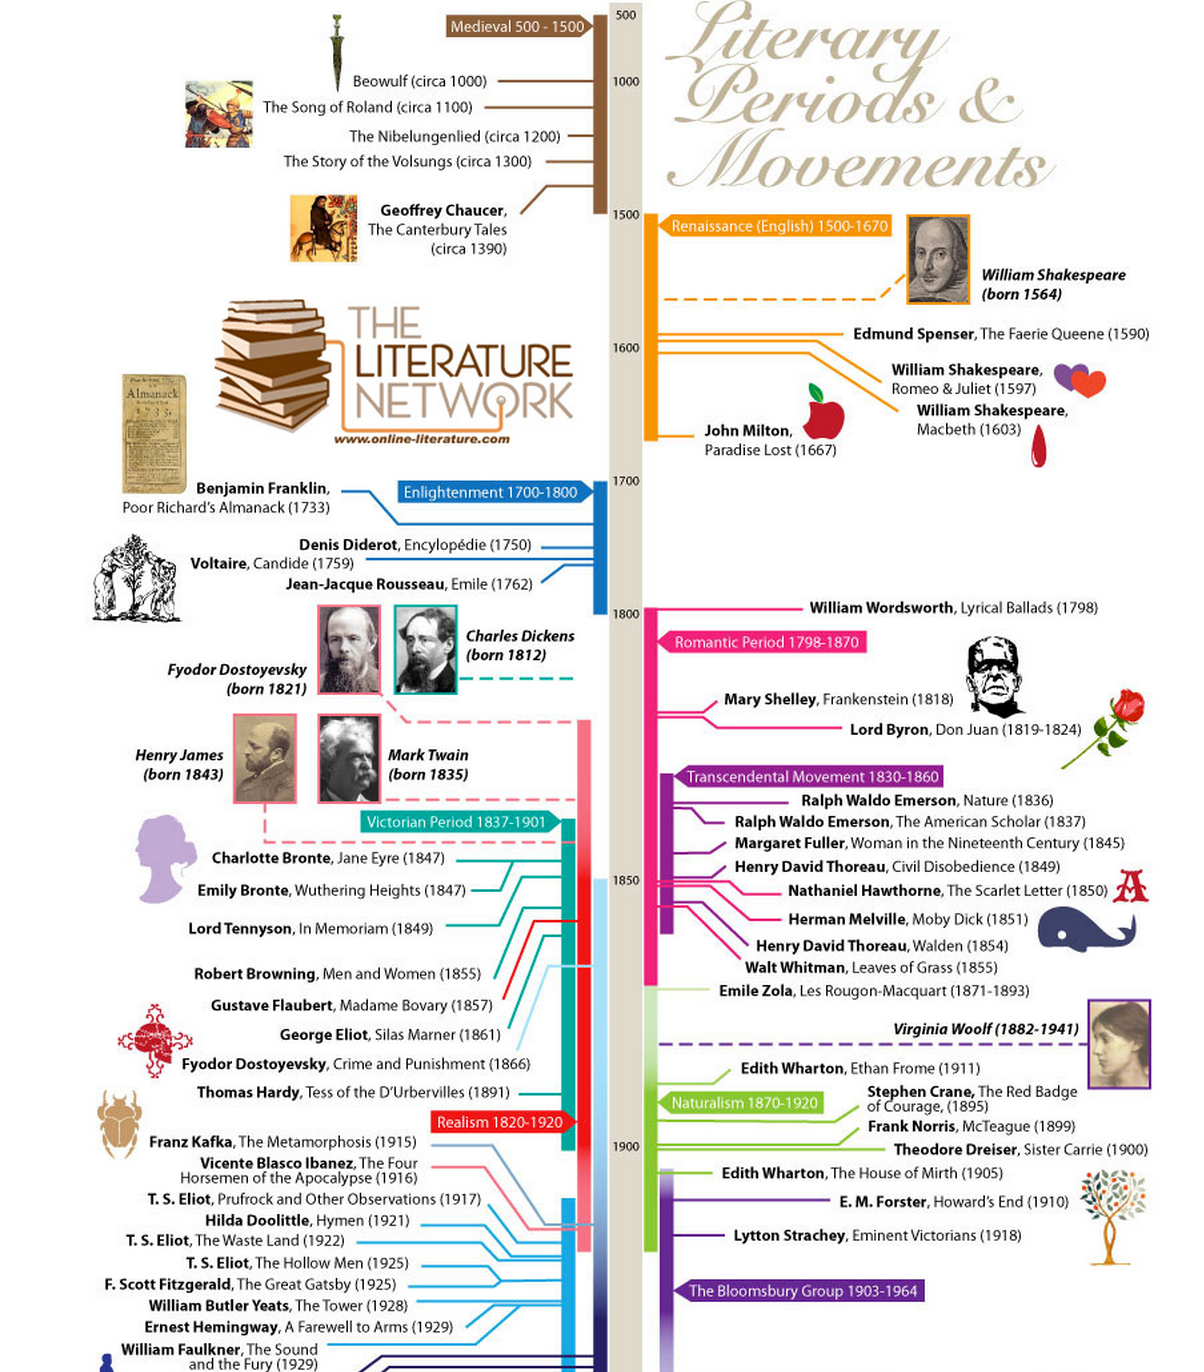 an analysis of the evolution of british poetry and the elizabethan literary Much restoration poetry uses heroic couplets writing literary analysis the restoration period in english literature: timeline & overview related study materials.